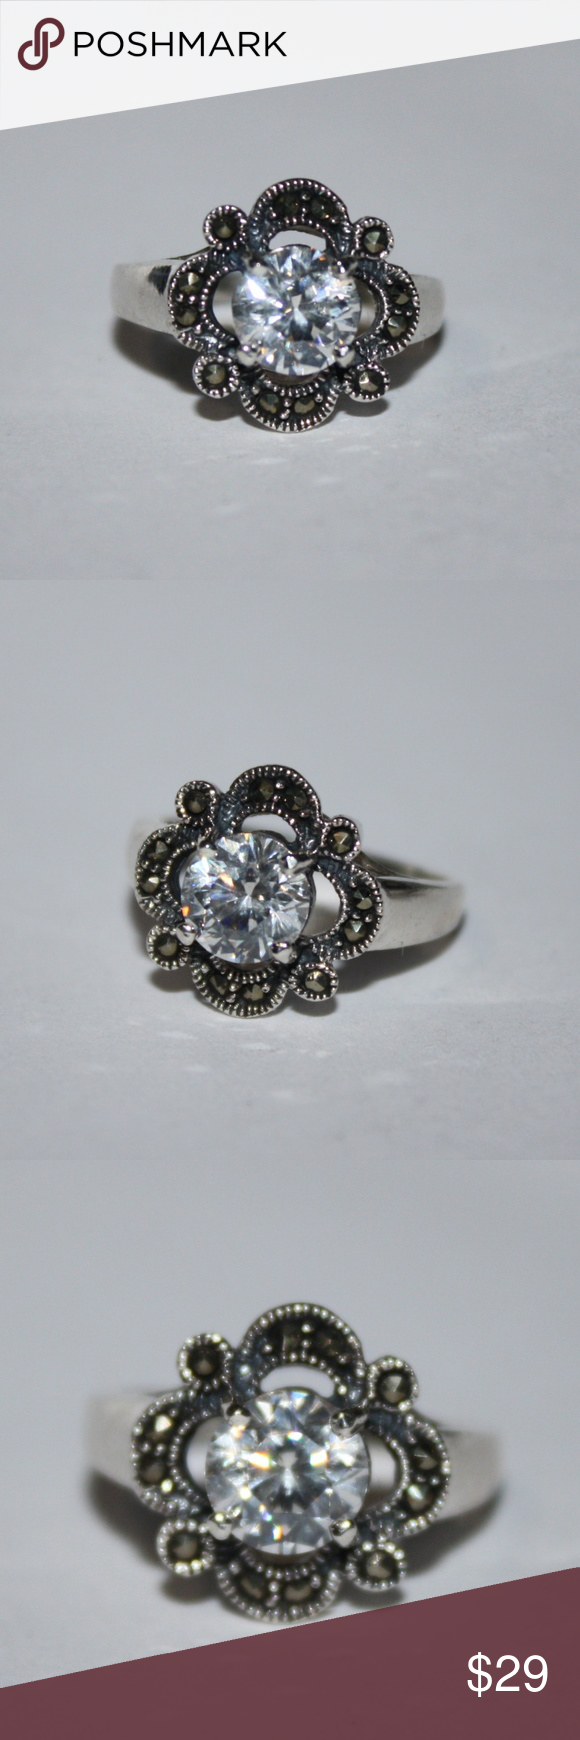 Stunning CZ and Marcasite .925 Sterling ring NWT Beautiful